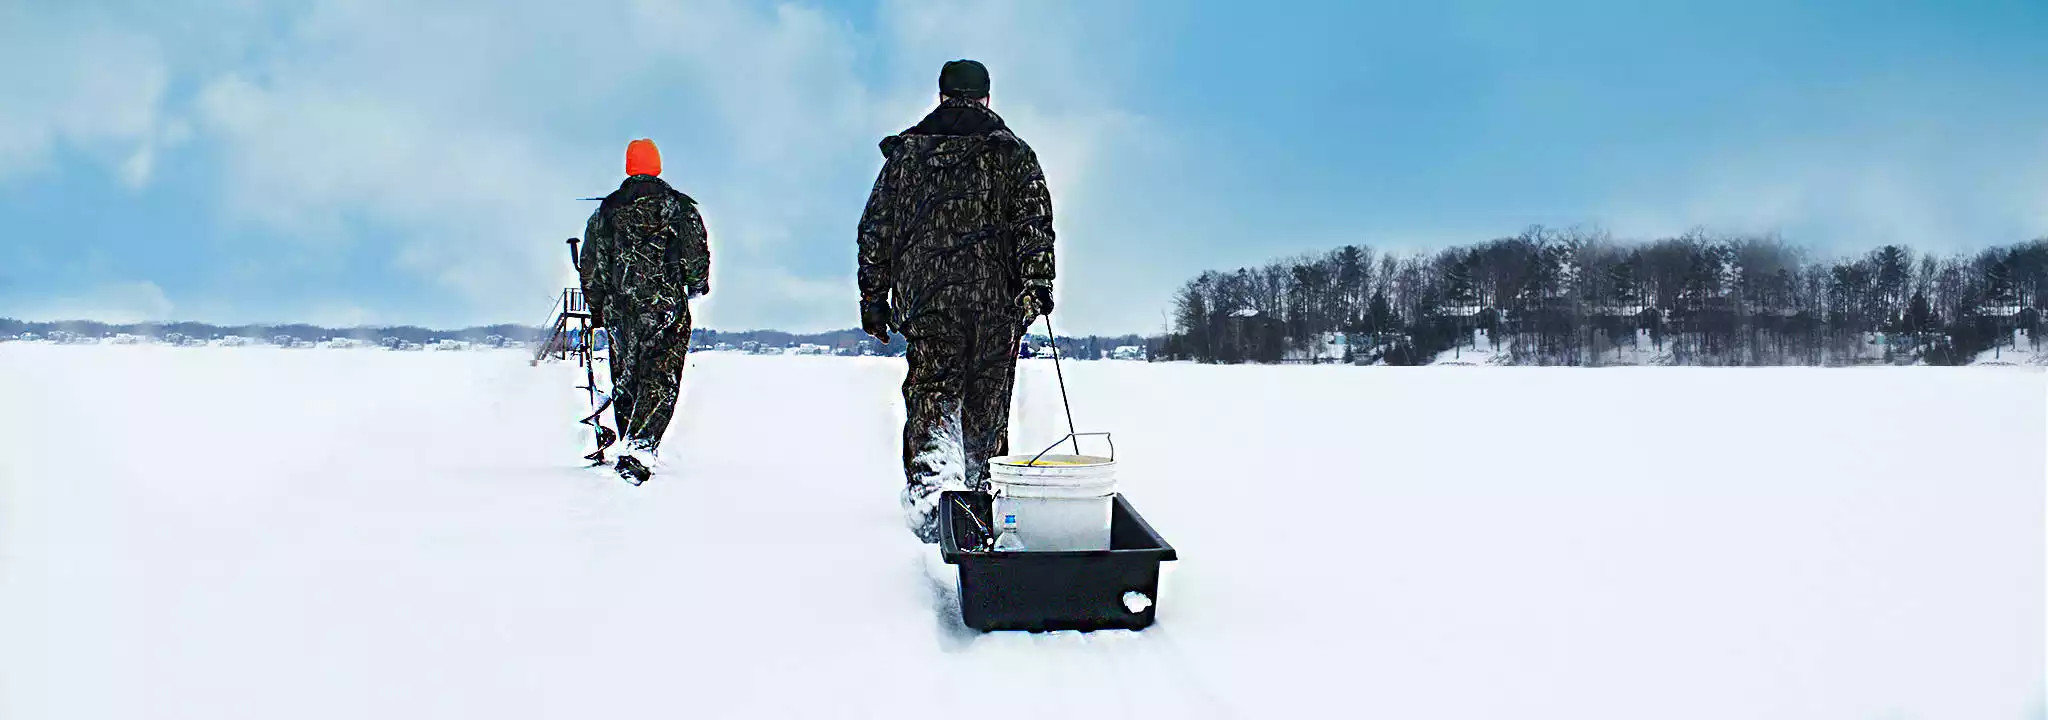 Winter Fishing in Traverse City, Michigan | Ice Fishing